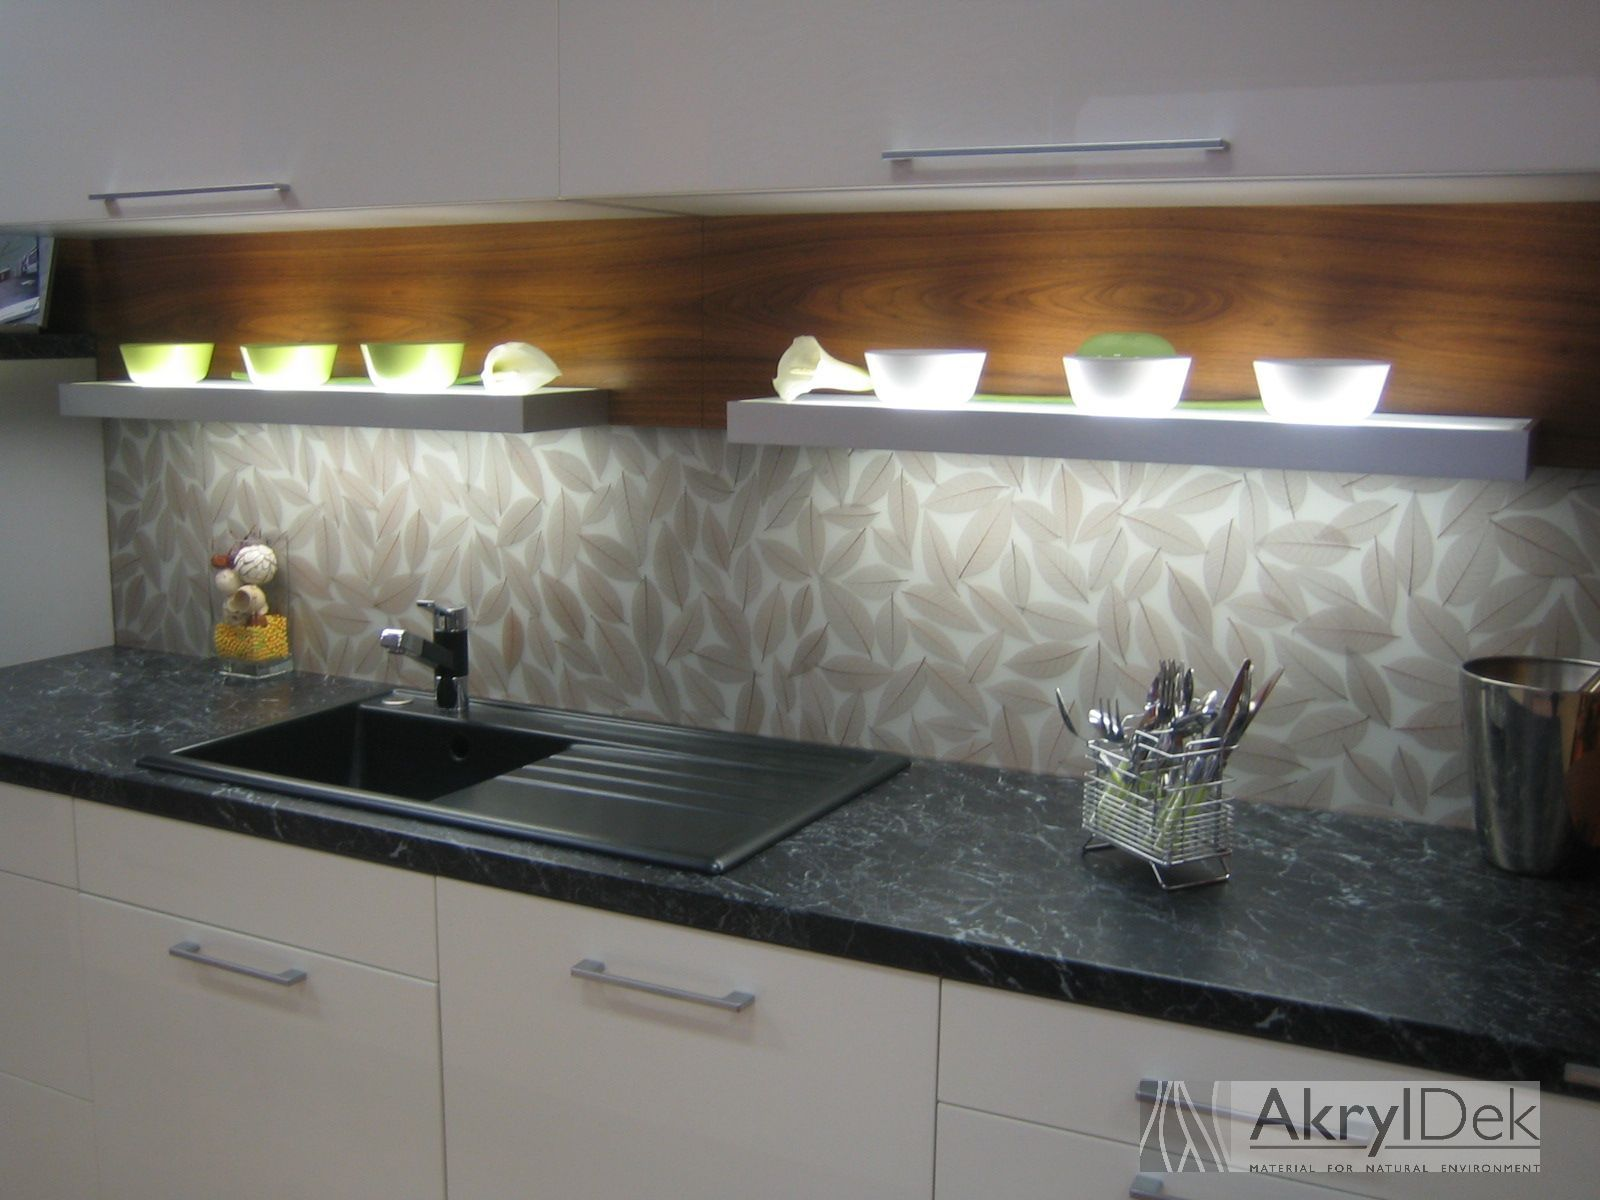 Delightful Kitchen Wall Decoration Instead Of Kitchen Tiles, Pattern Of Brown Leaves # Resin #acrylic